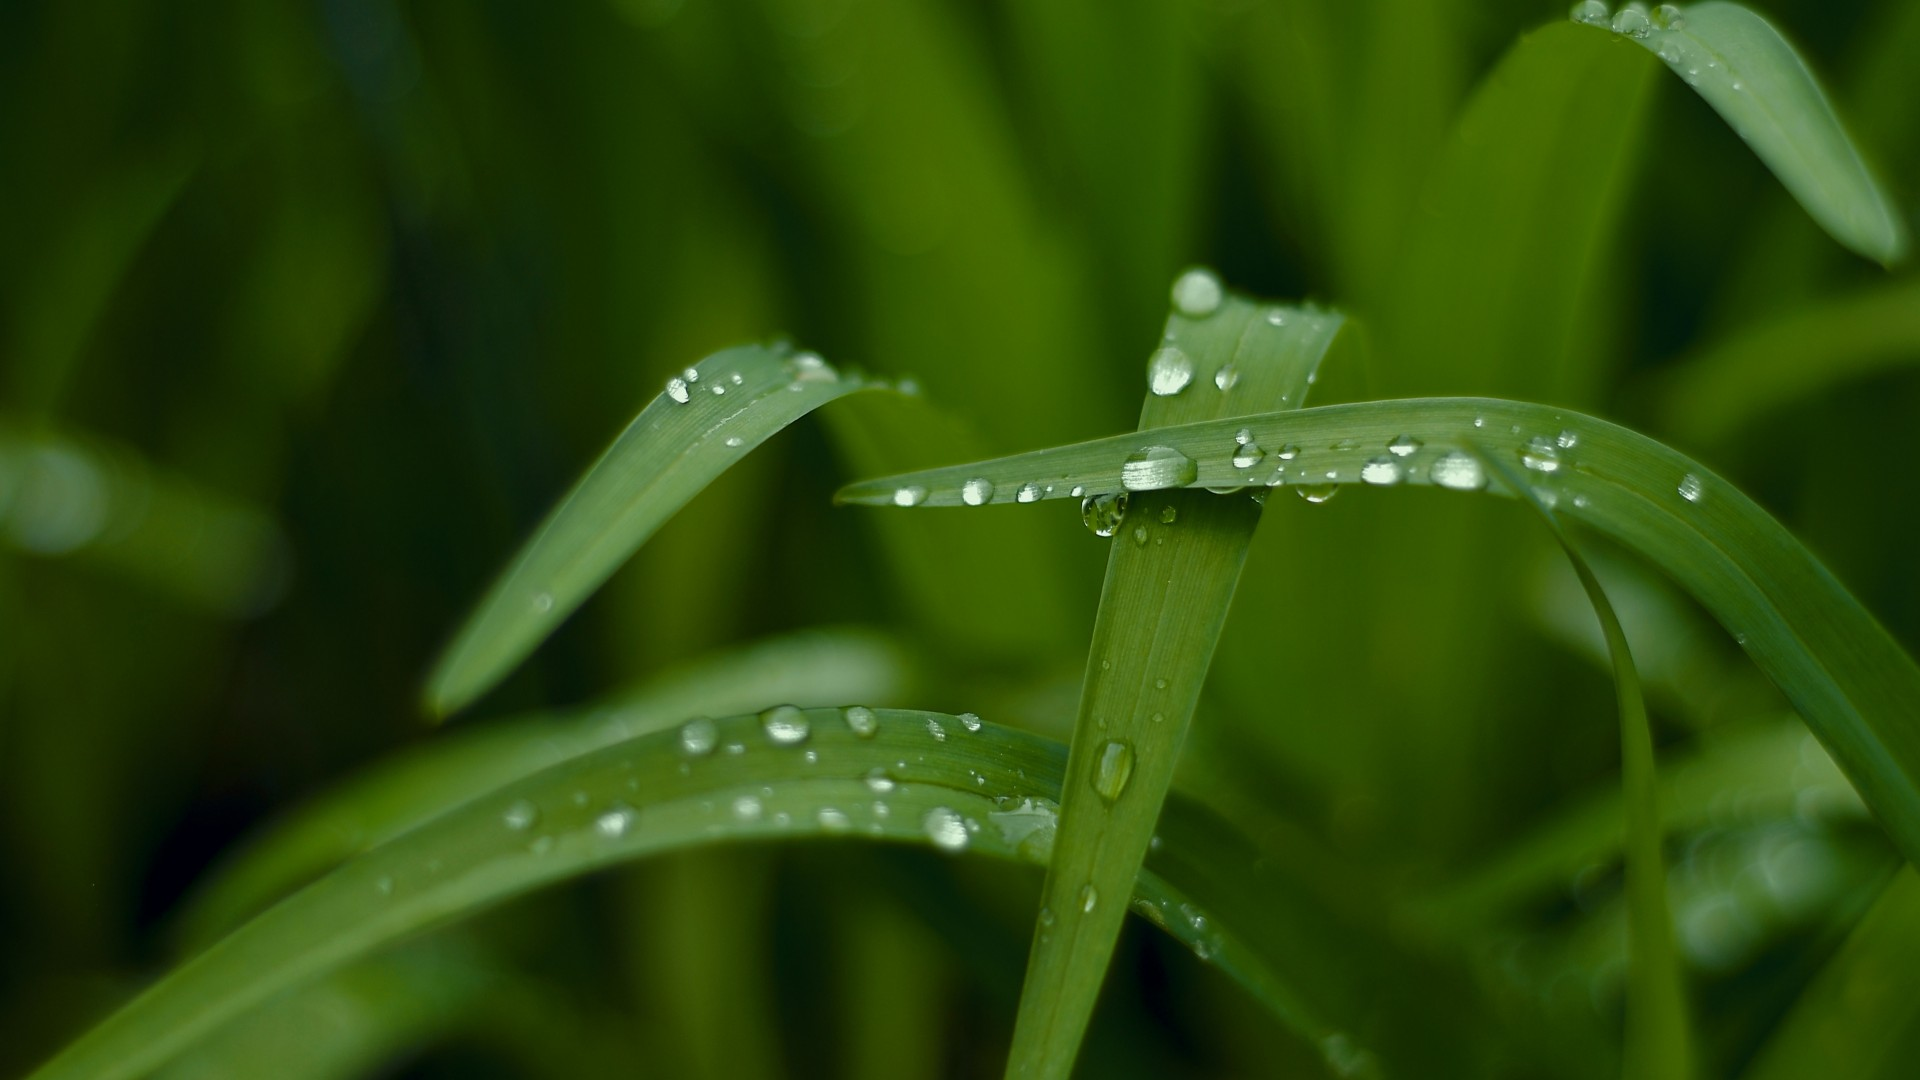 Wallpaper Grass Hd 4k Wallpaper Macro Drops Green